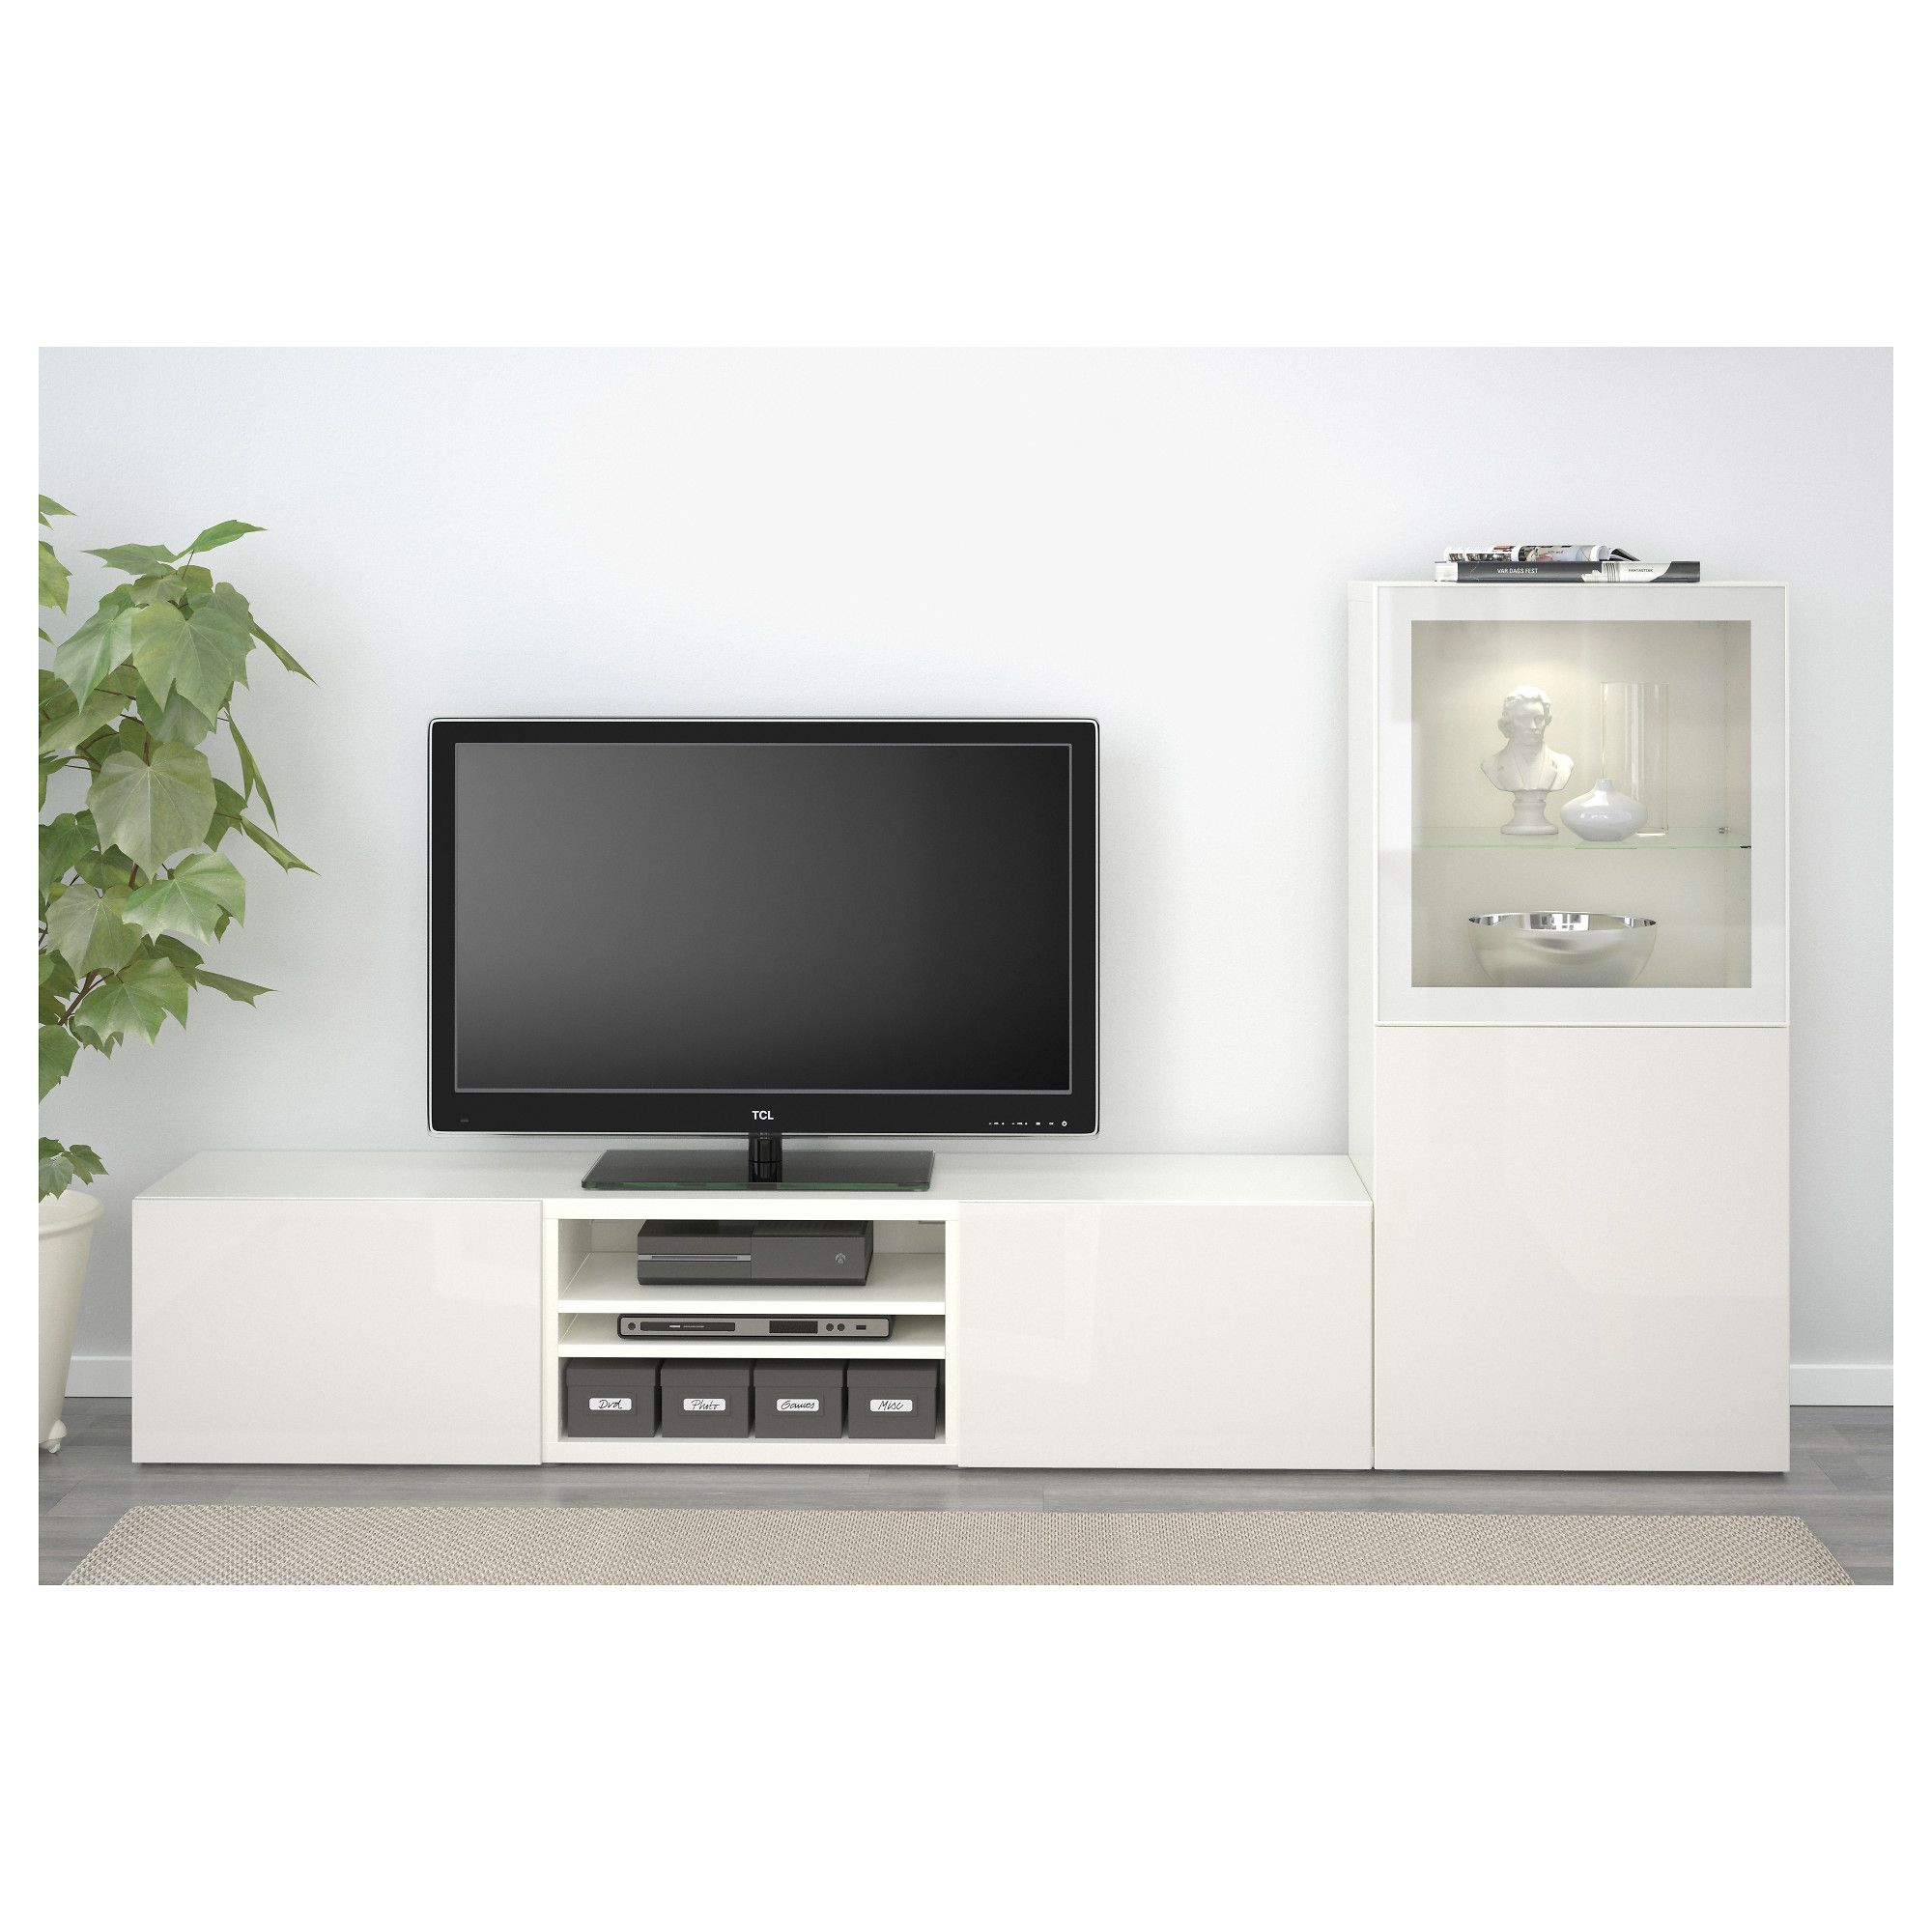 Ikea Bestå Tv Storage Combinationglass Doors White